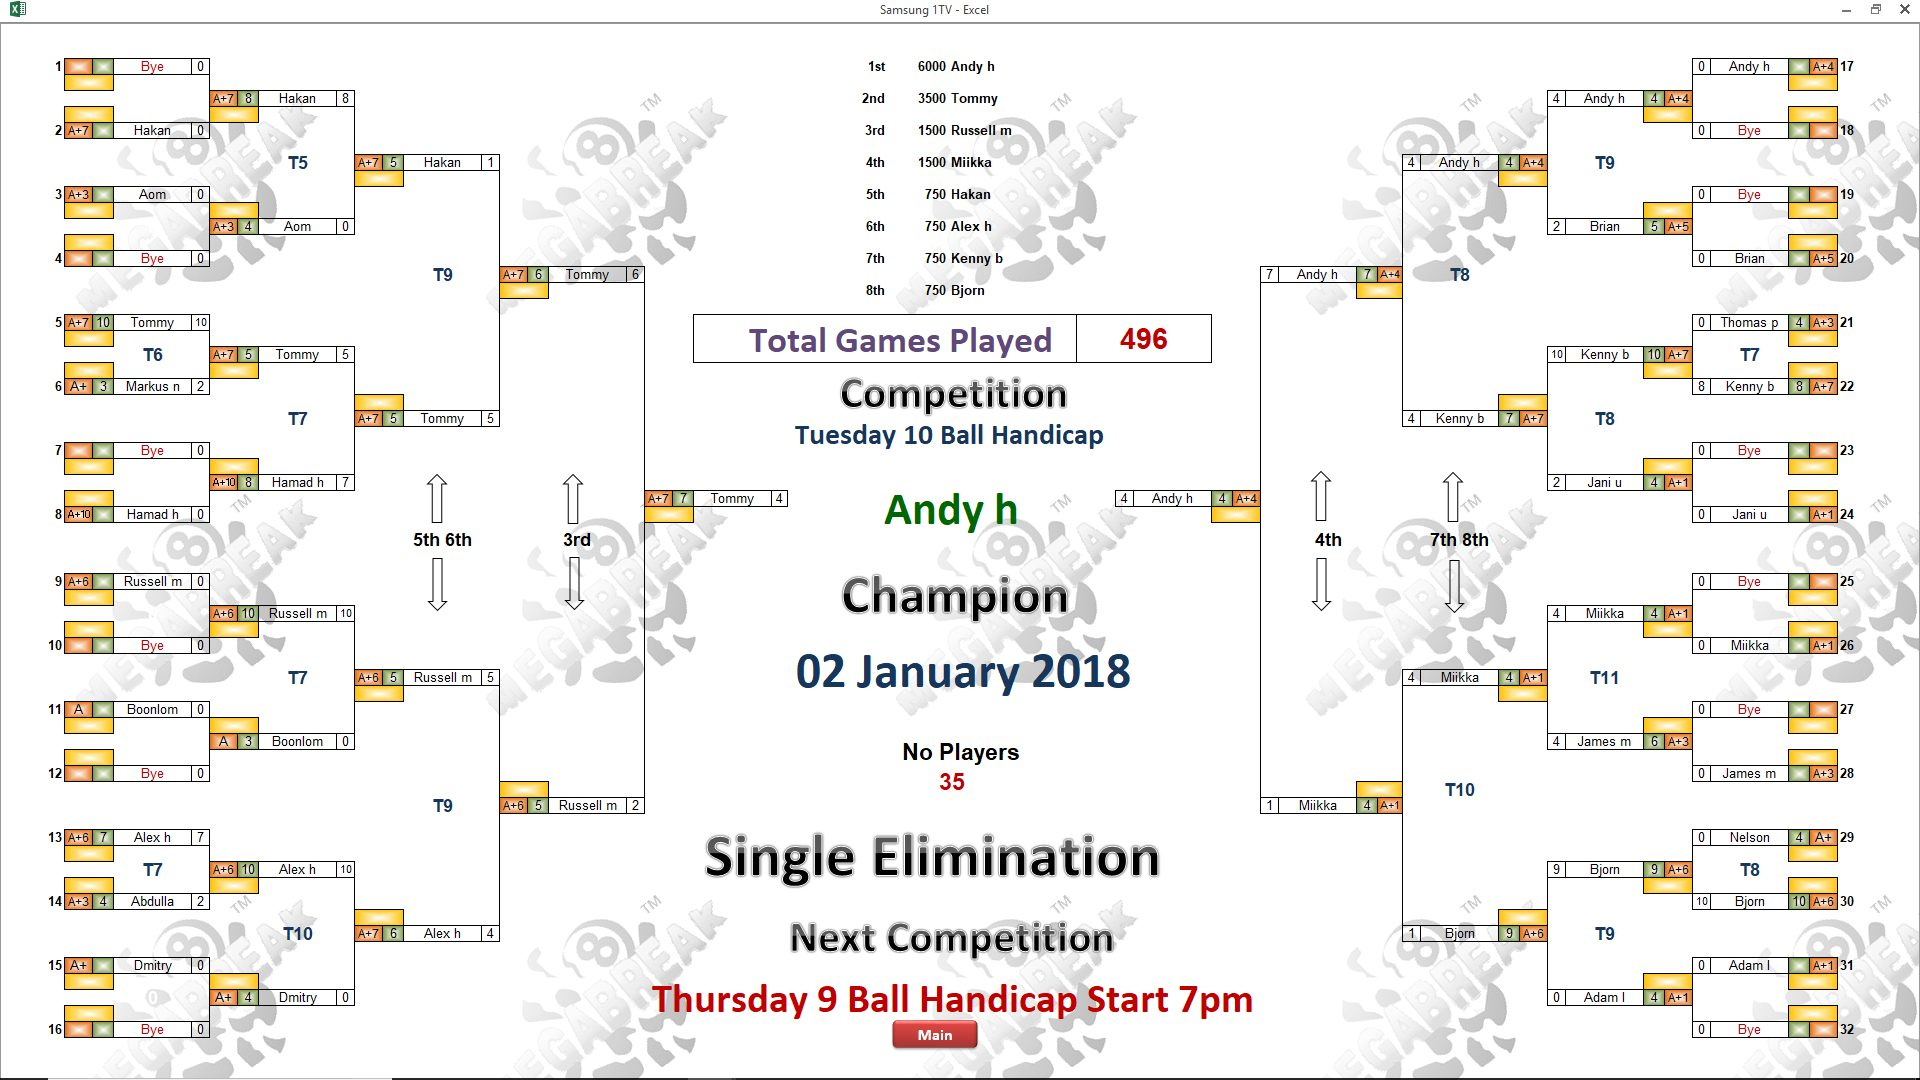 Tues 02 01 andy wins megabreak pool equal 5th 6 mike berezovsky hakan james mostag kenny brian priest alex and andy hall bjorn 2600 baht each ccuart Image collections